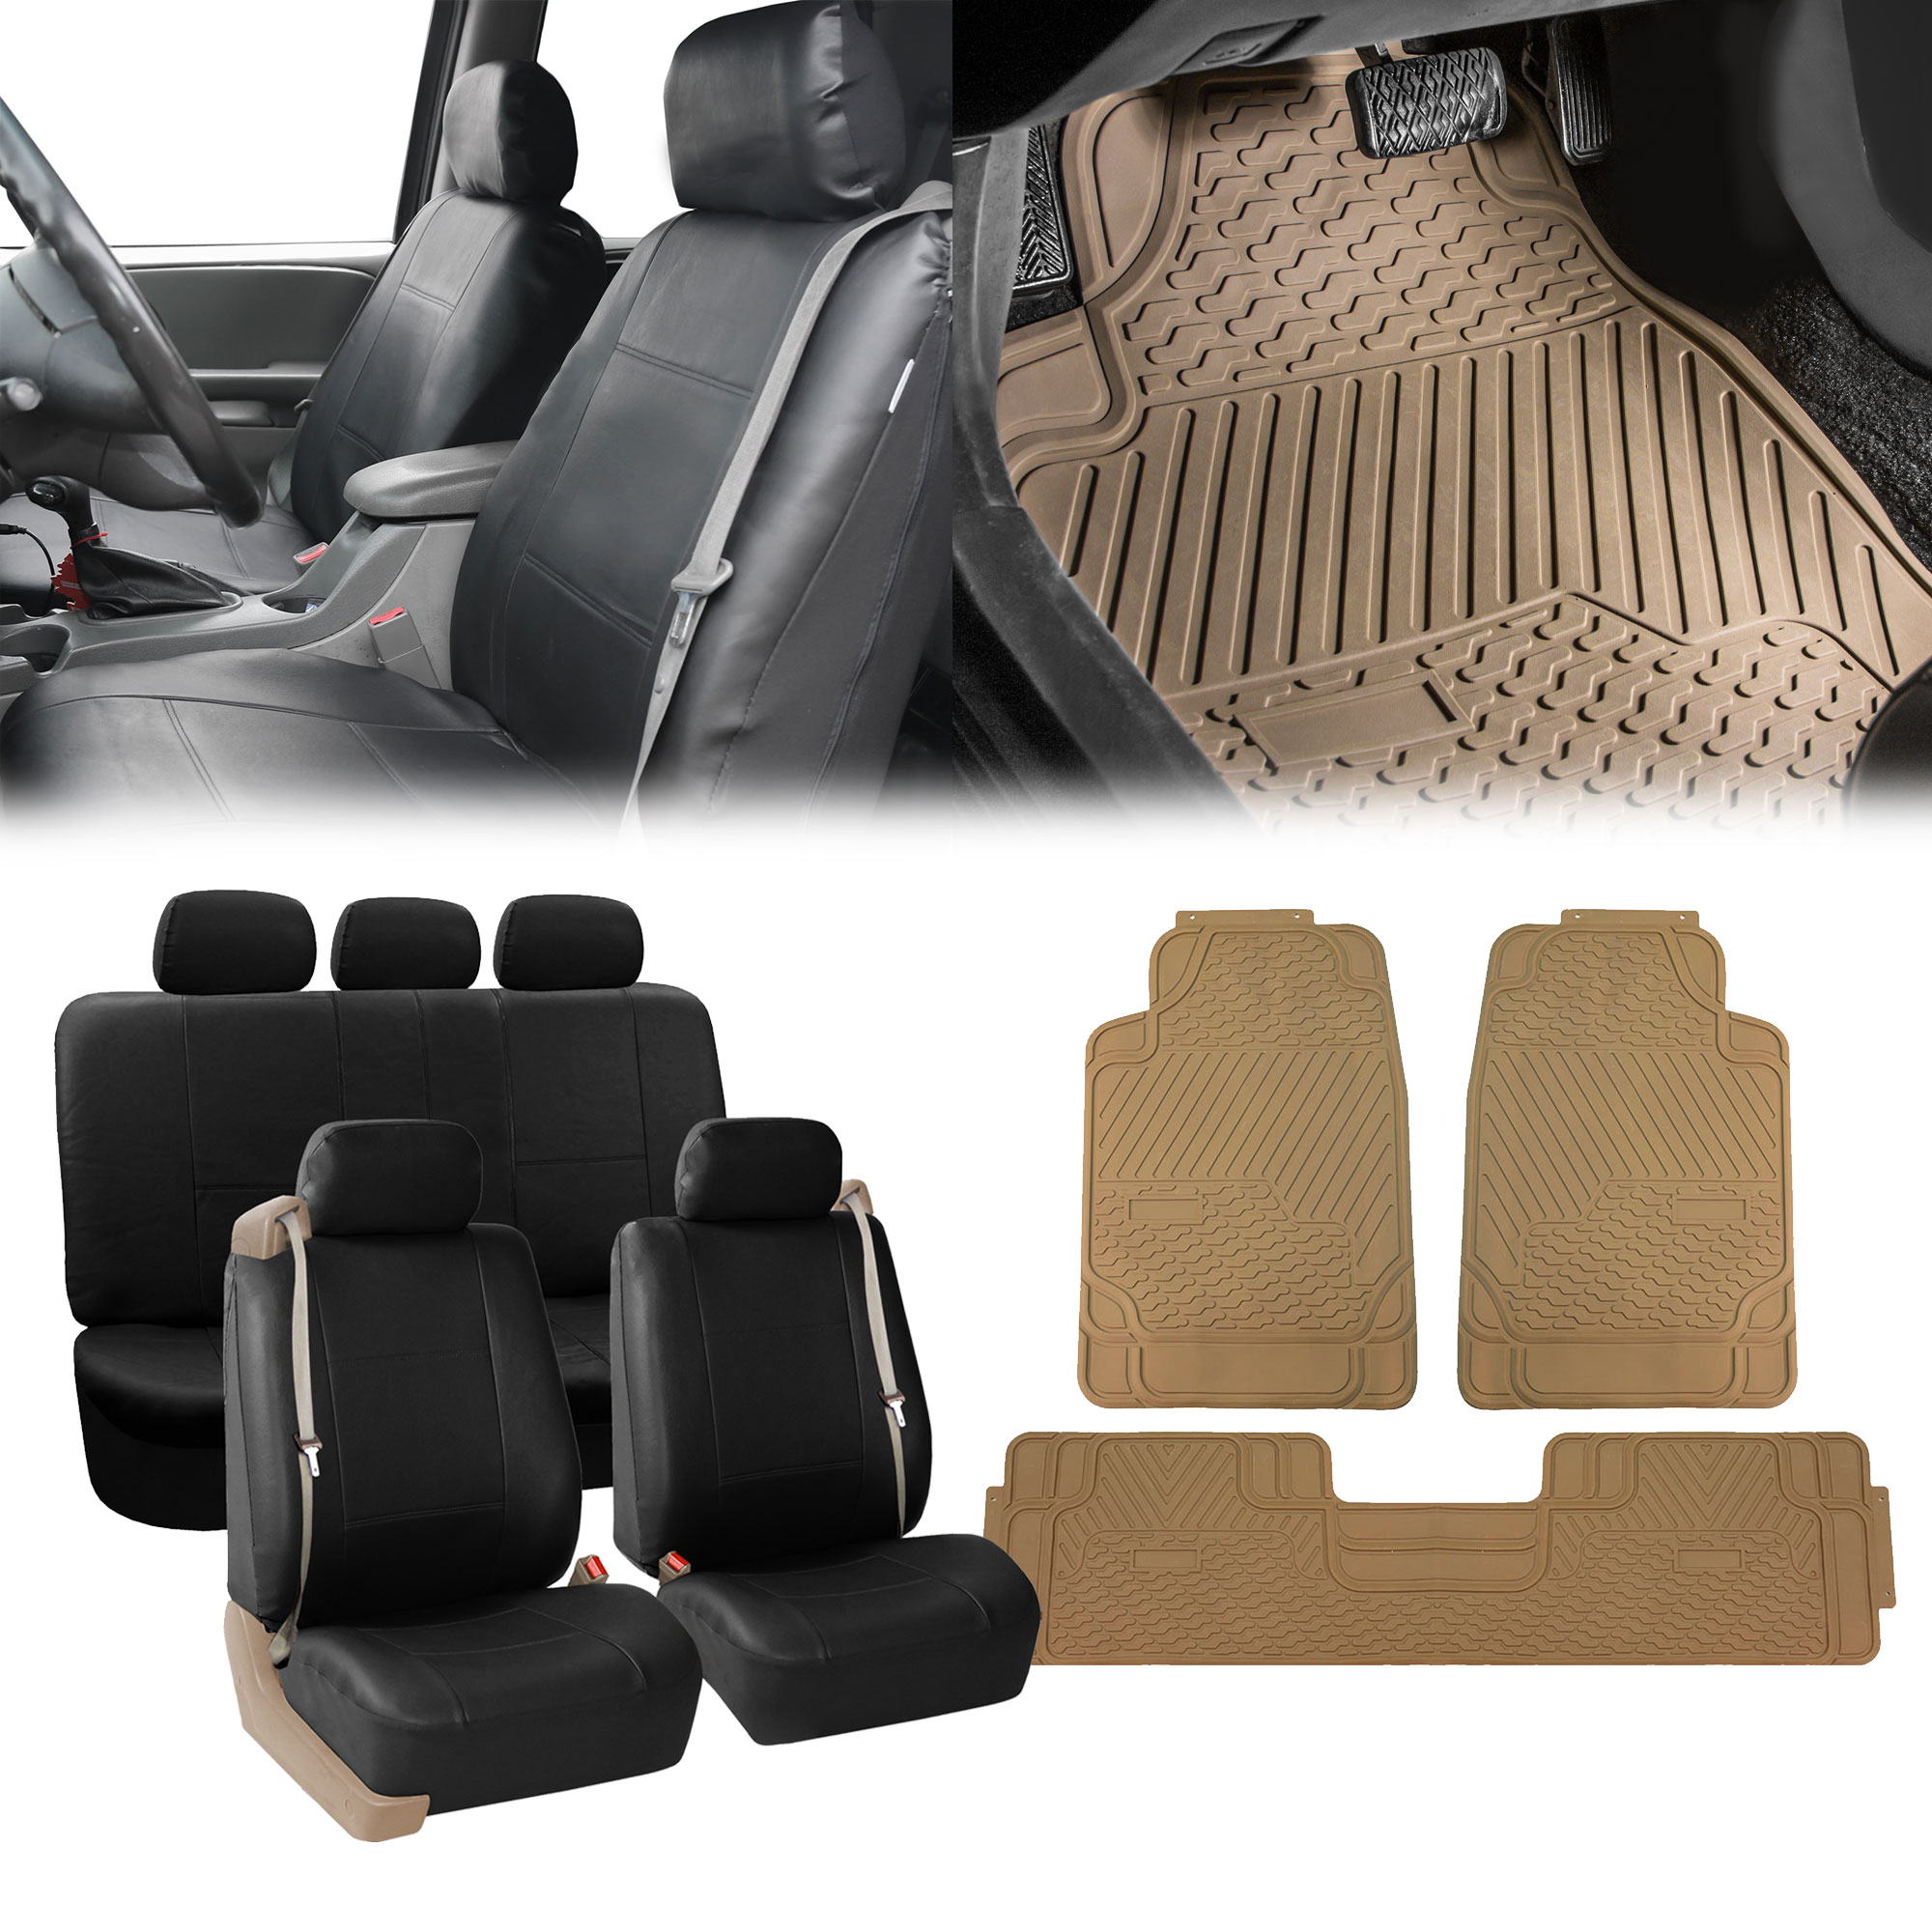 Premium PU Leather With A Protective Coating That Is Soft To The Touch Water Resistant And Durable Package Includes Complete Car Seat Covers Set